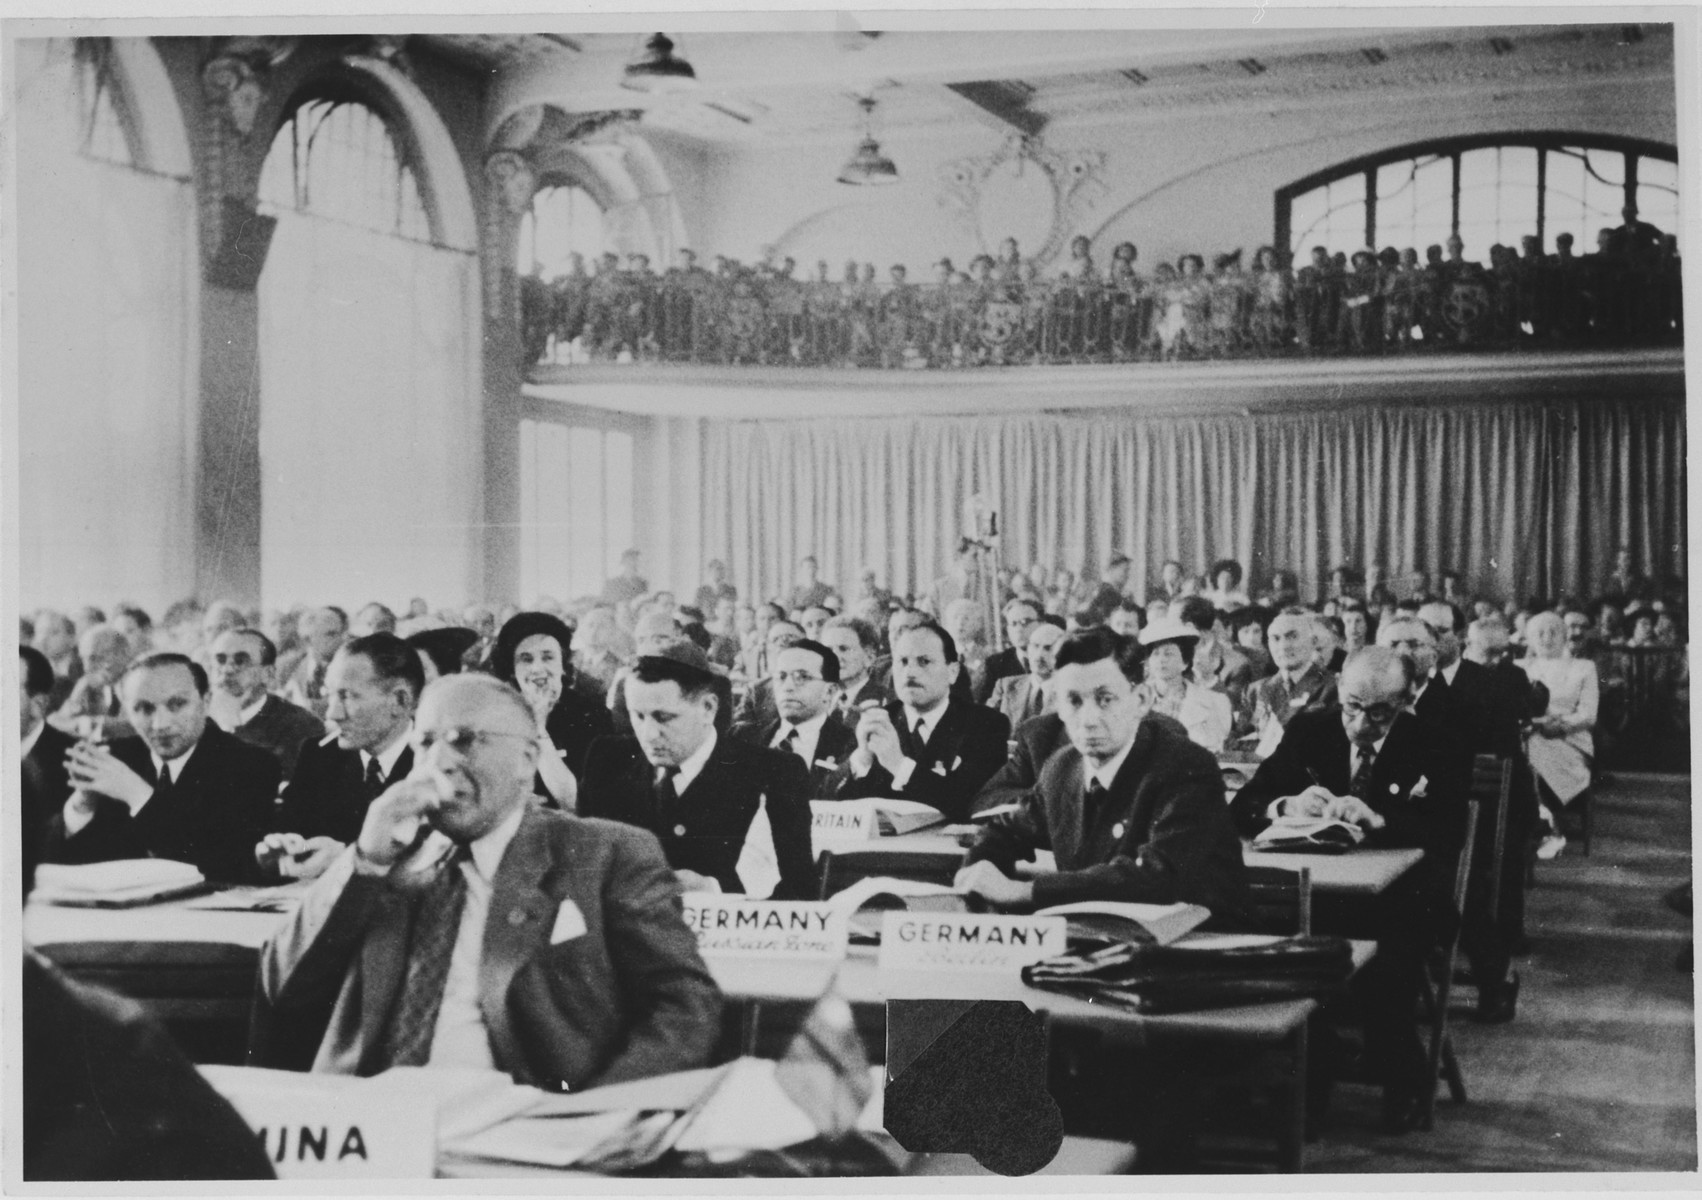 Jewish leaders attend a meeting of the World Jewish Congress in Montreux, Switzerland.  Among those pictured are German-Jewish delegates, Hans Fabian (second row from the front, right) and Heinz Gelinsky (next to Fabian).   Josef Rosensaft, is at the extreme left in the second row; next to him is Bernard (Dov or Berl) Laufer (smoking a cigarette), and next to him - second from the aisle - is Samuel Weintraub.